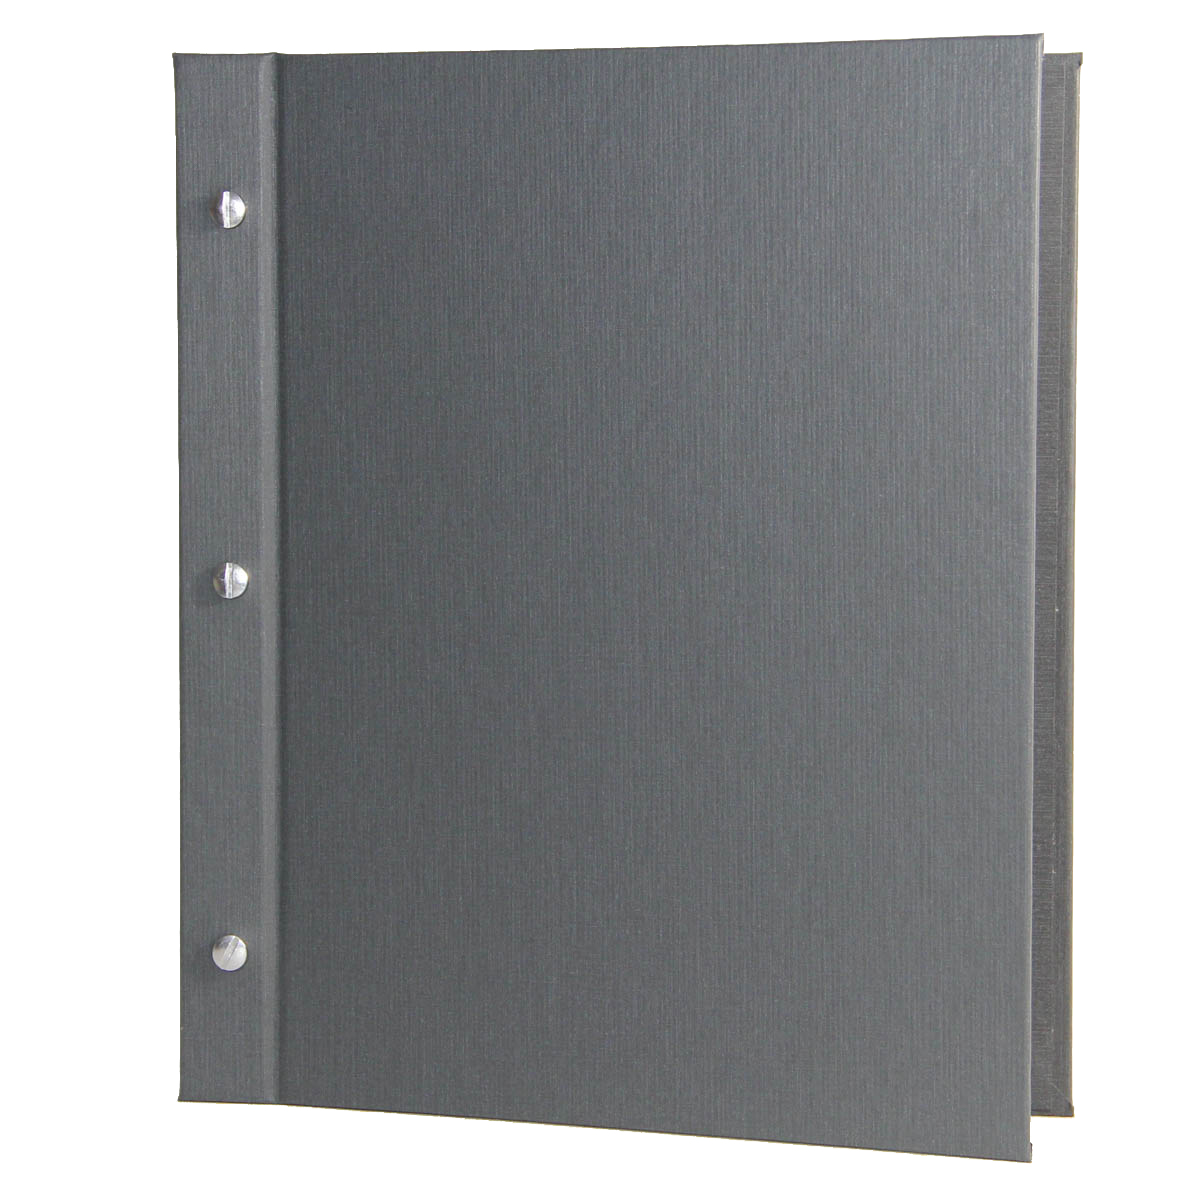 Summit Linen Chicago Menu Board 8.5x11 in charcoal with aluminum screws and posts.